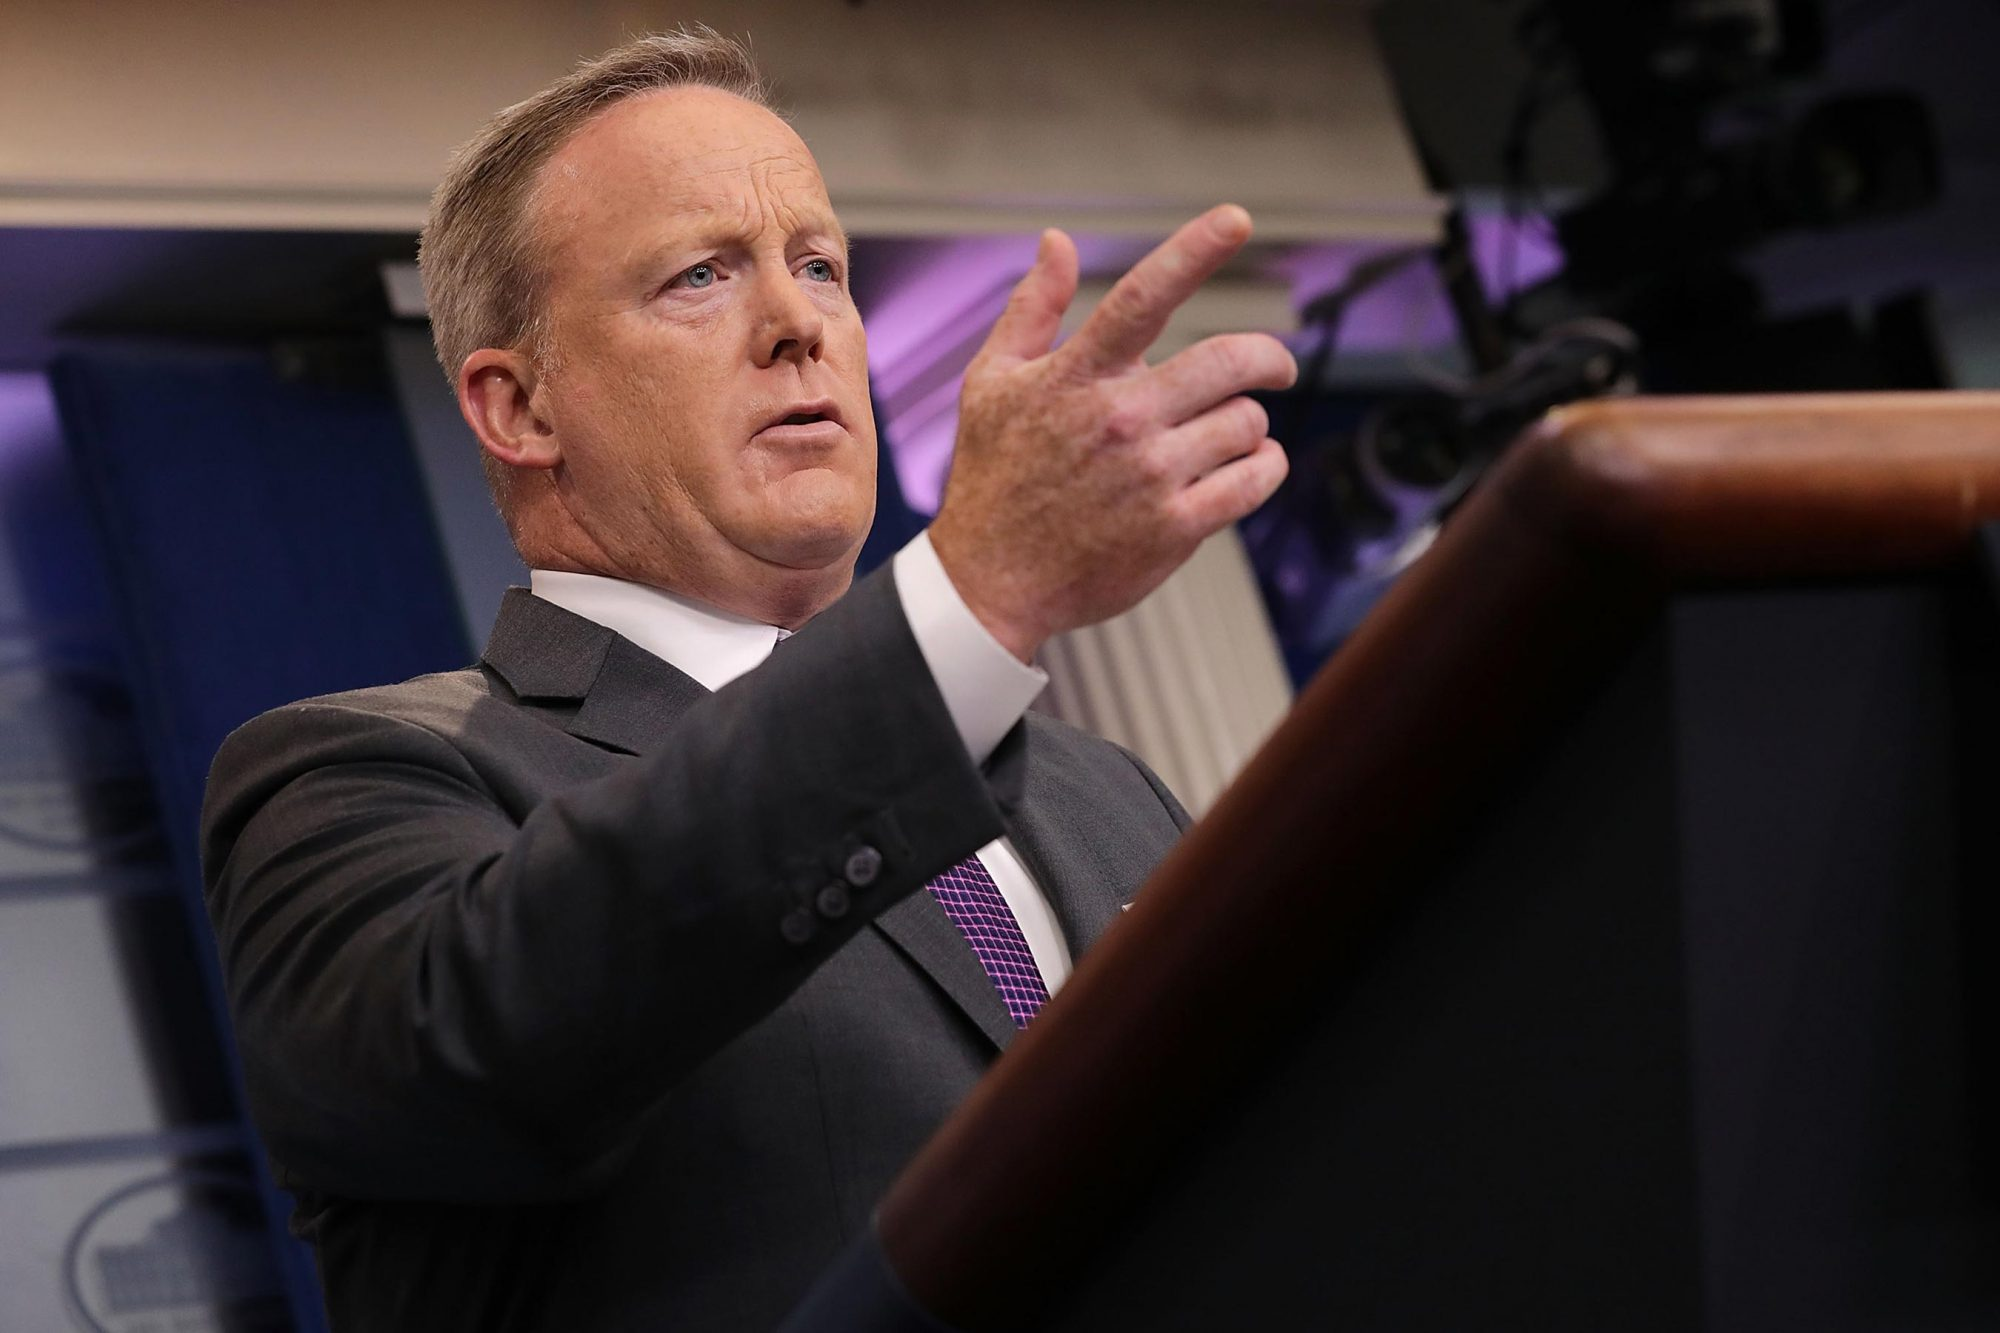 Press Secretary Sean Spicer Holds Daily Press Briefing At White House